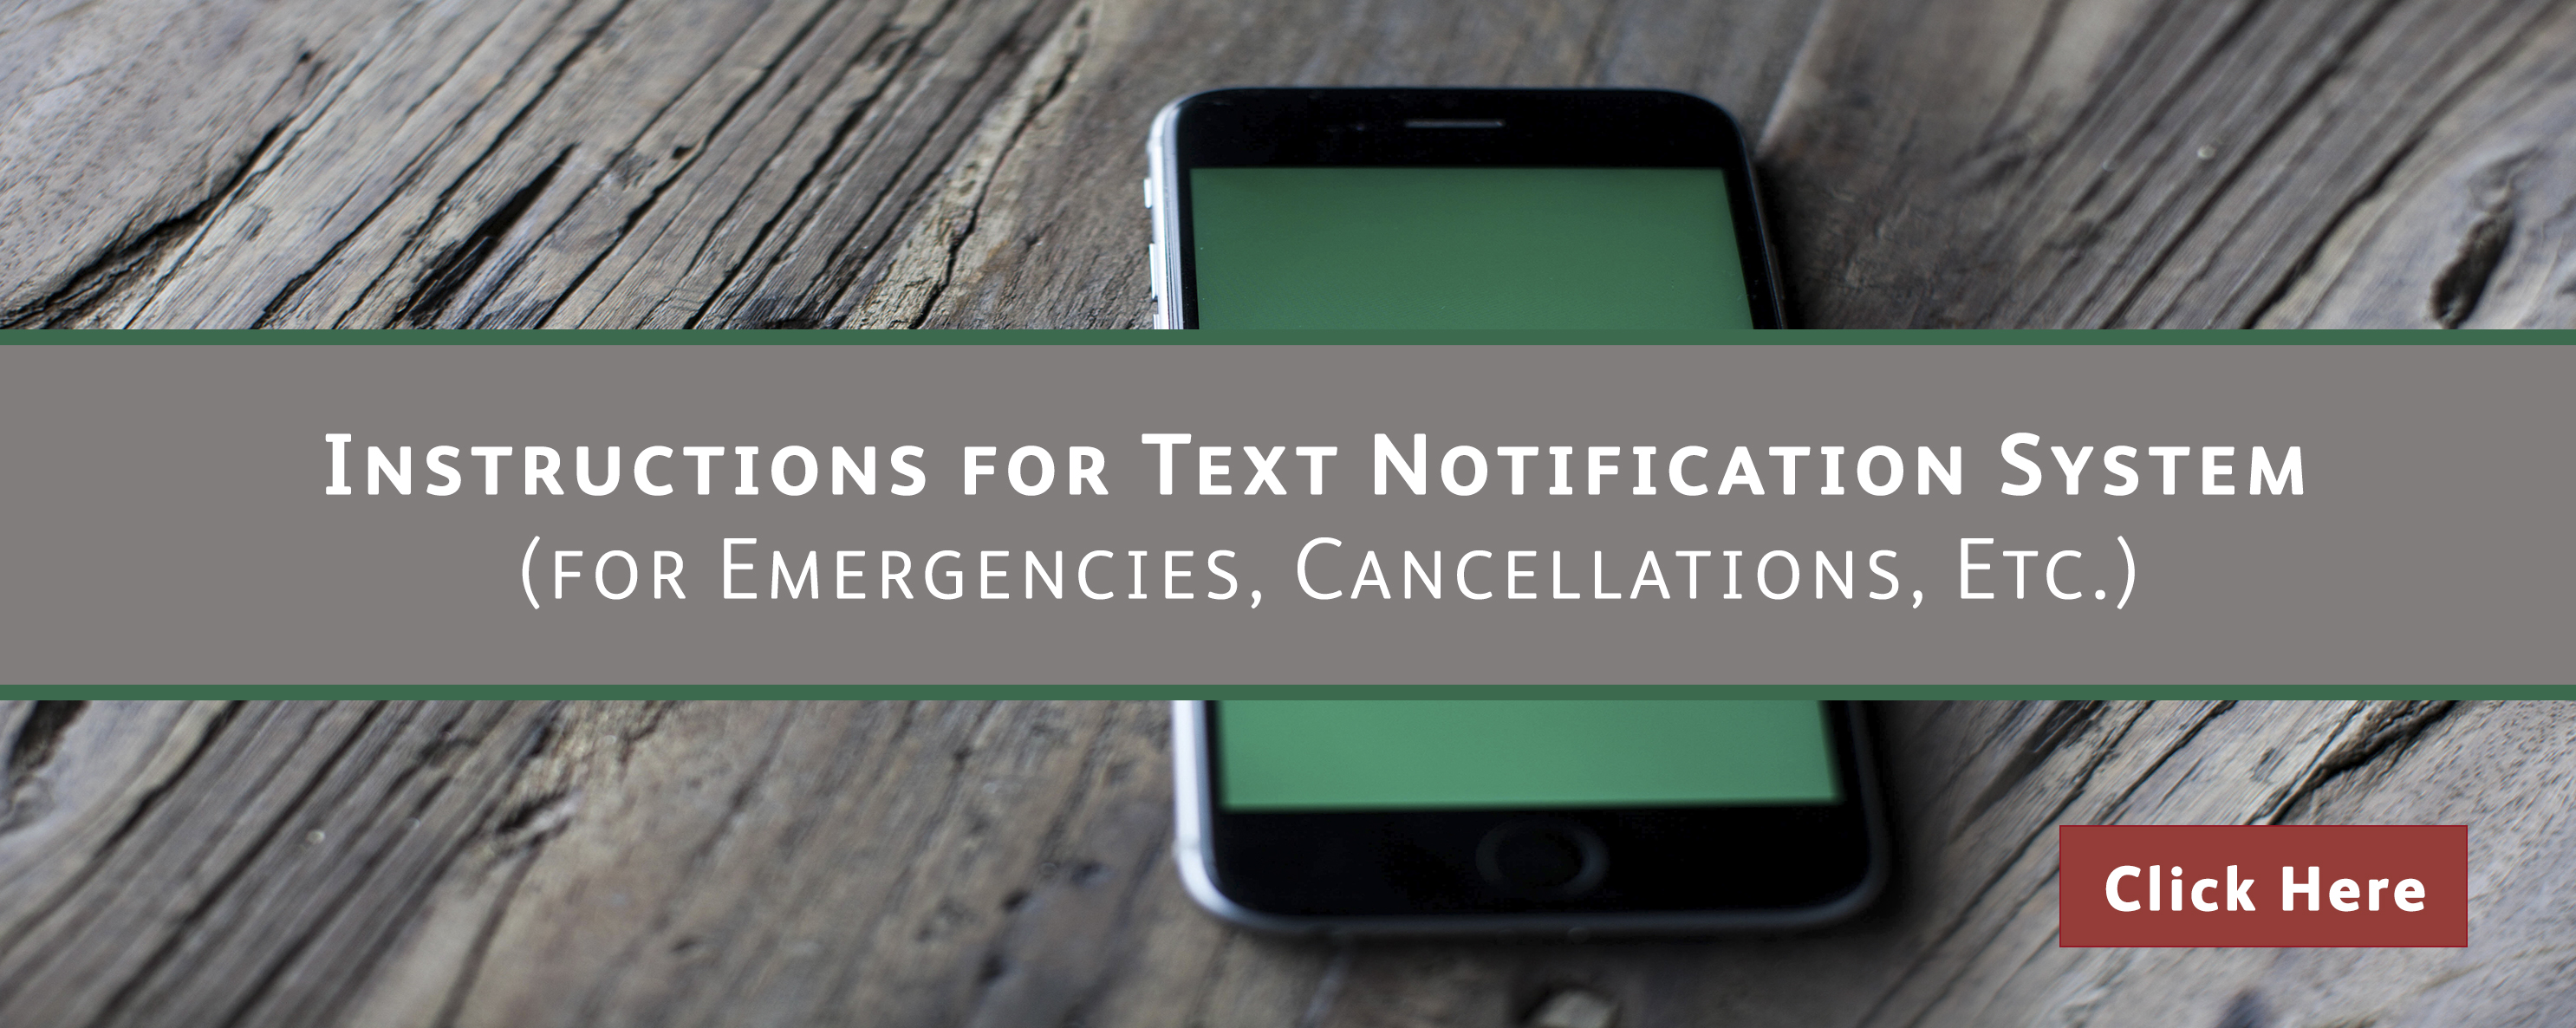 Text Notification Instructions- rotator